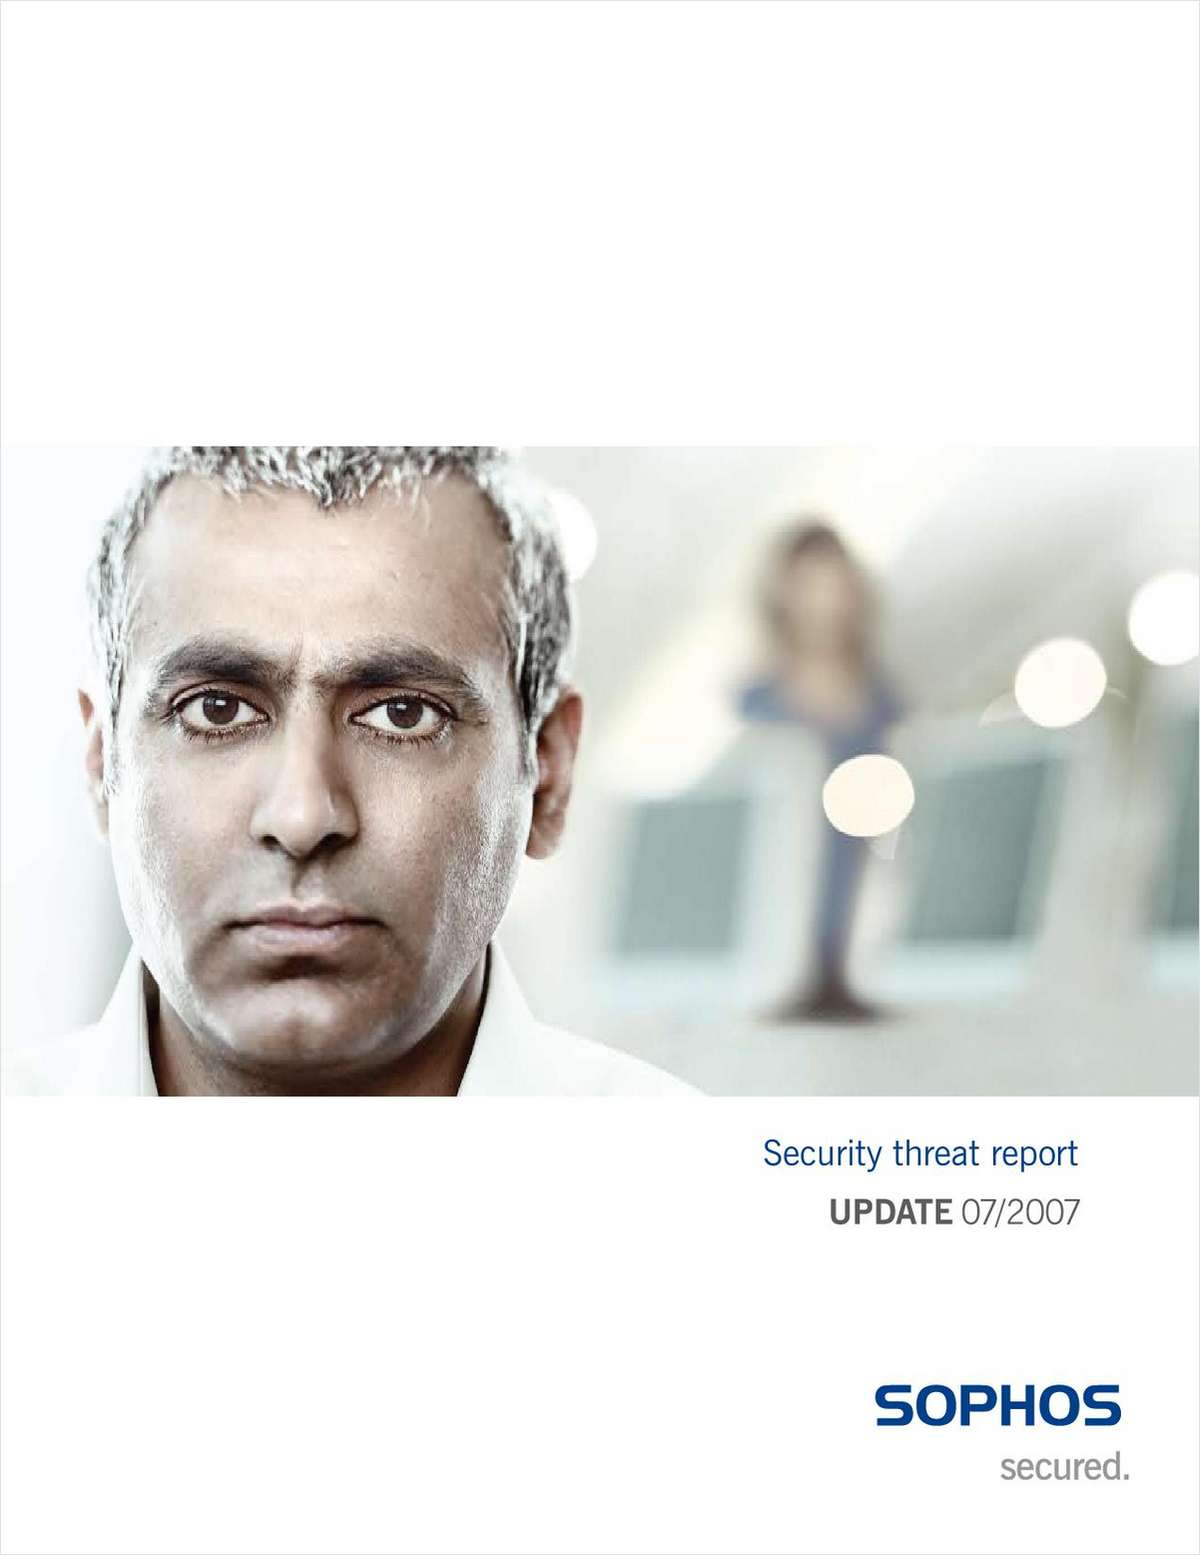 Trends in Malware: 2007 Security Threat Report